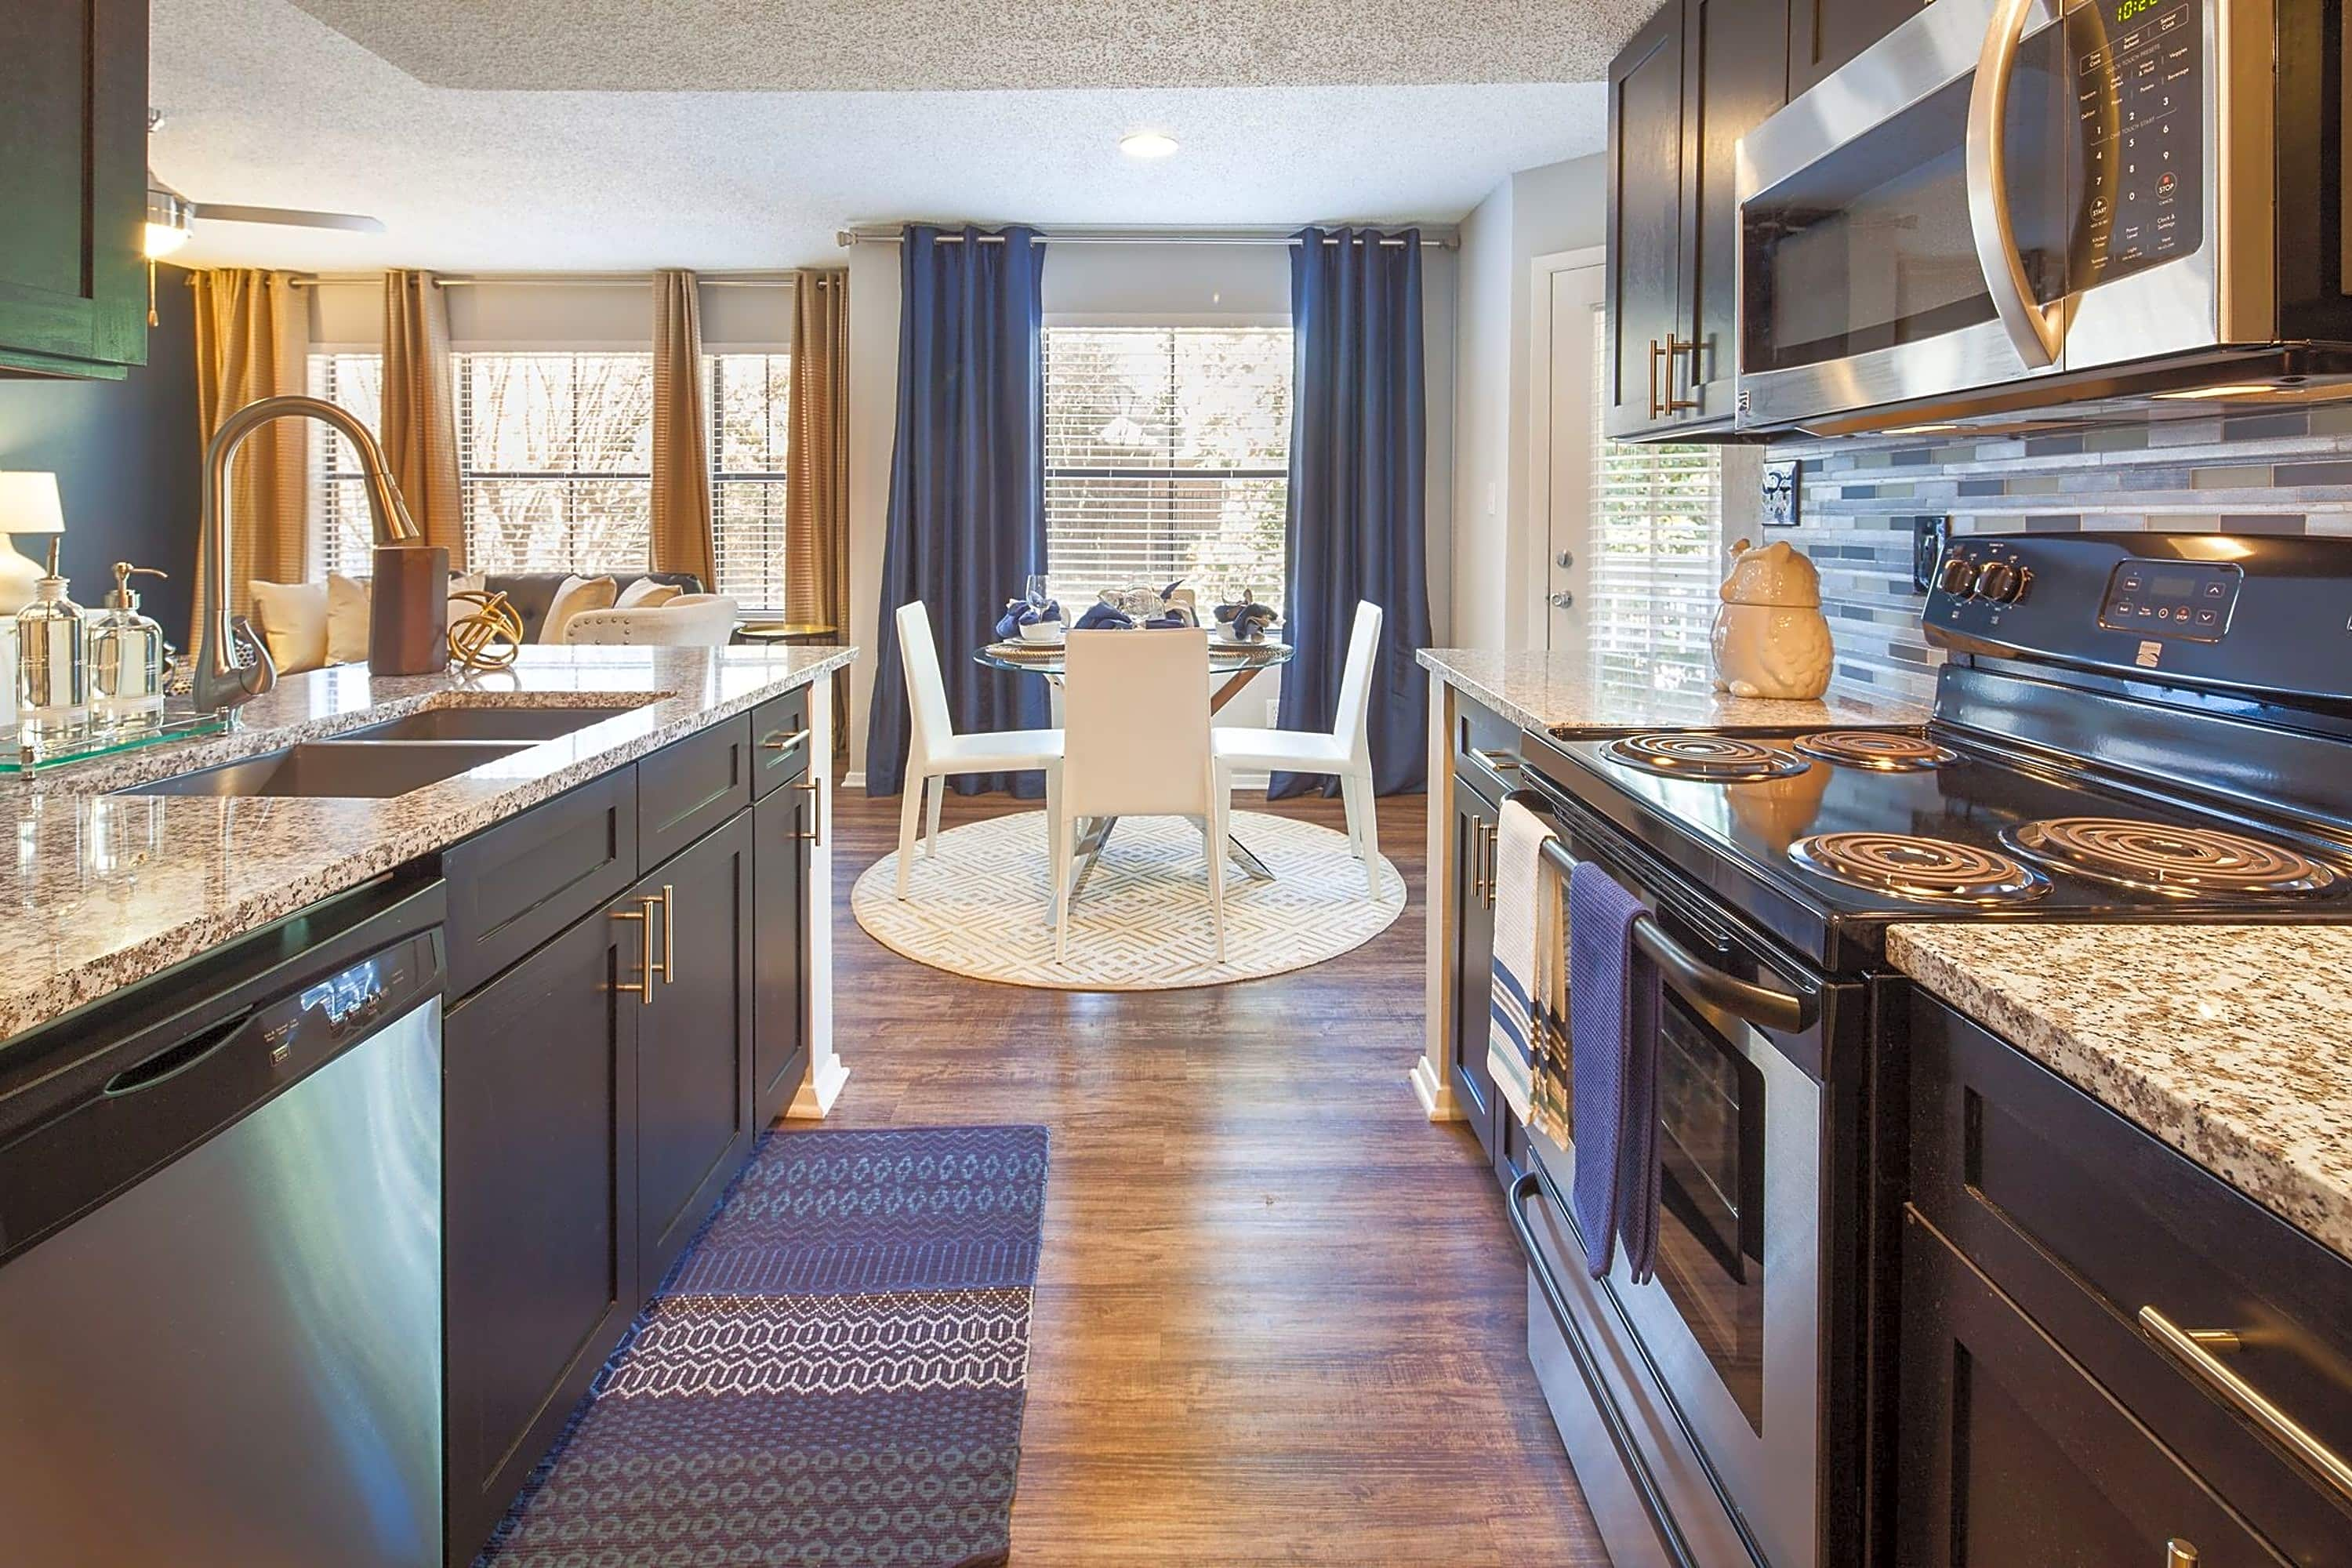 Anson At The Lakes by Cortland Apartments - Charlotte, NC 28210